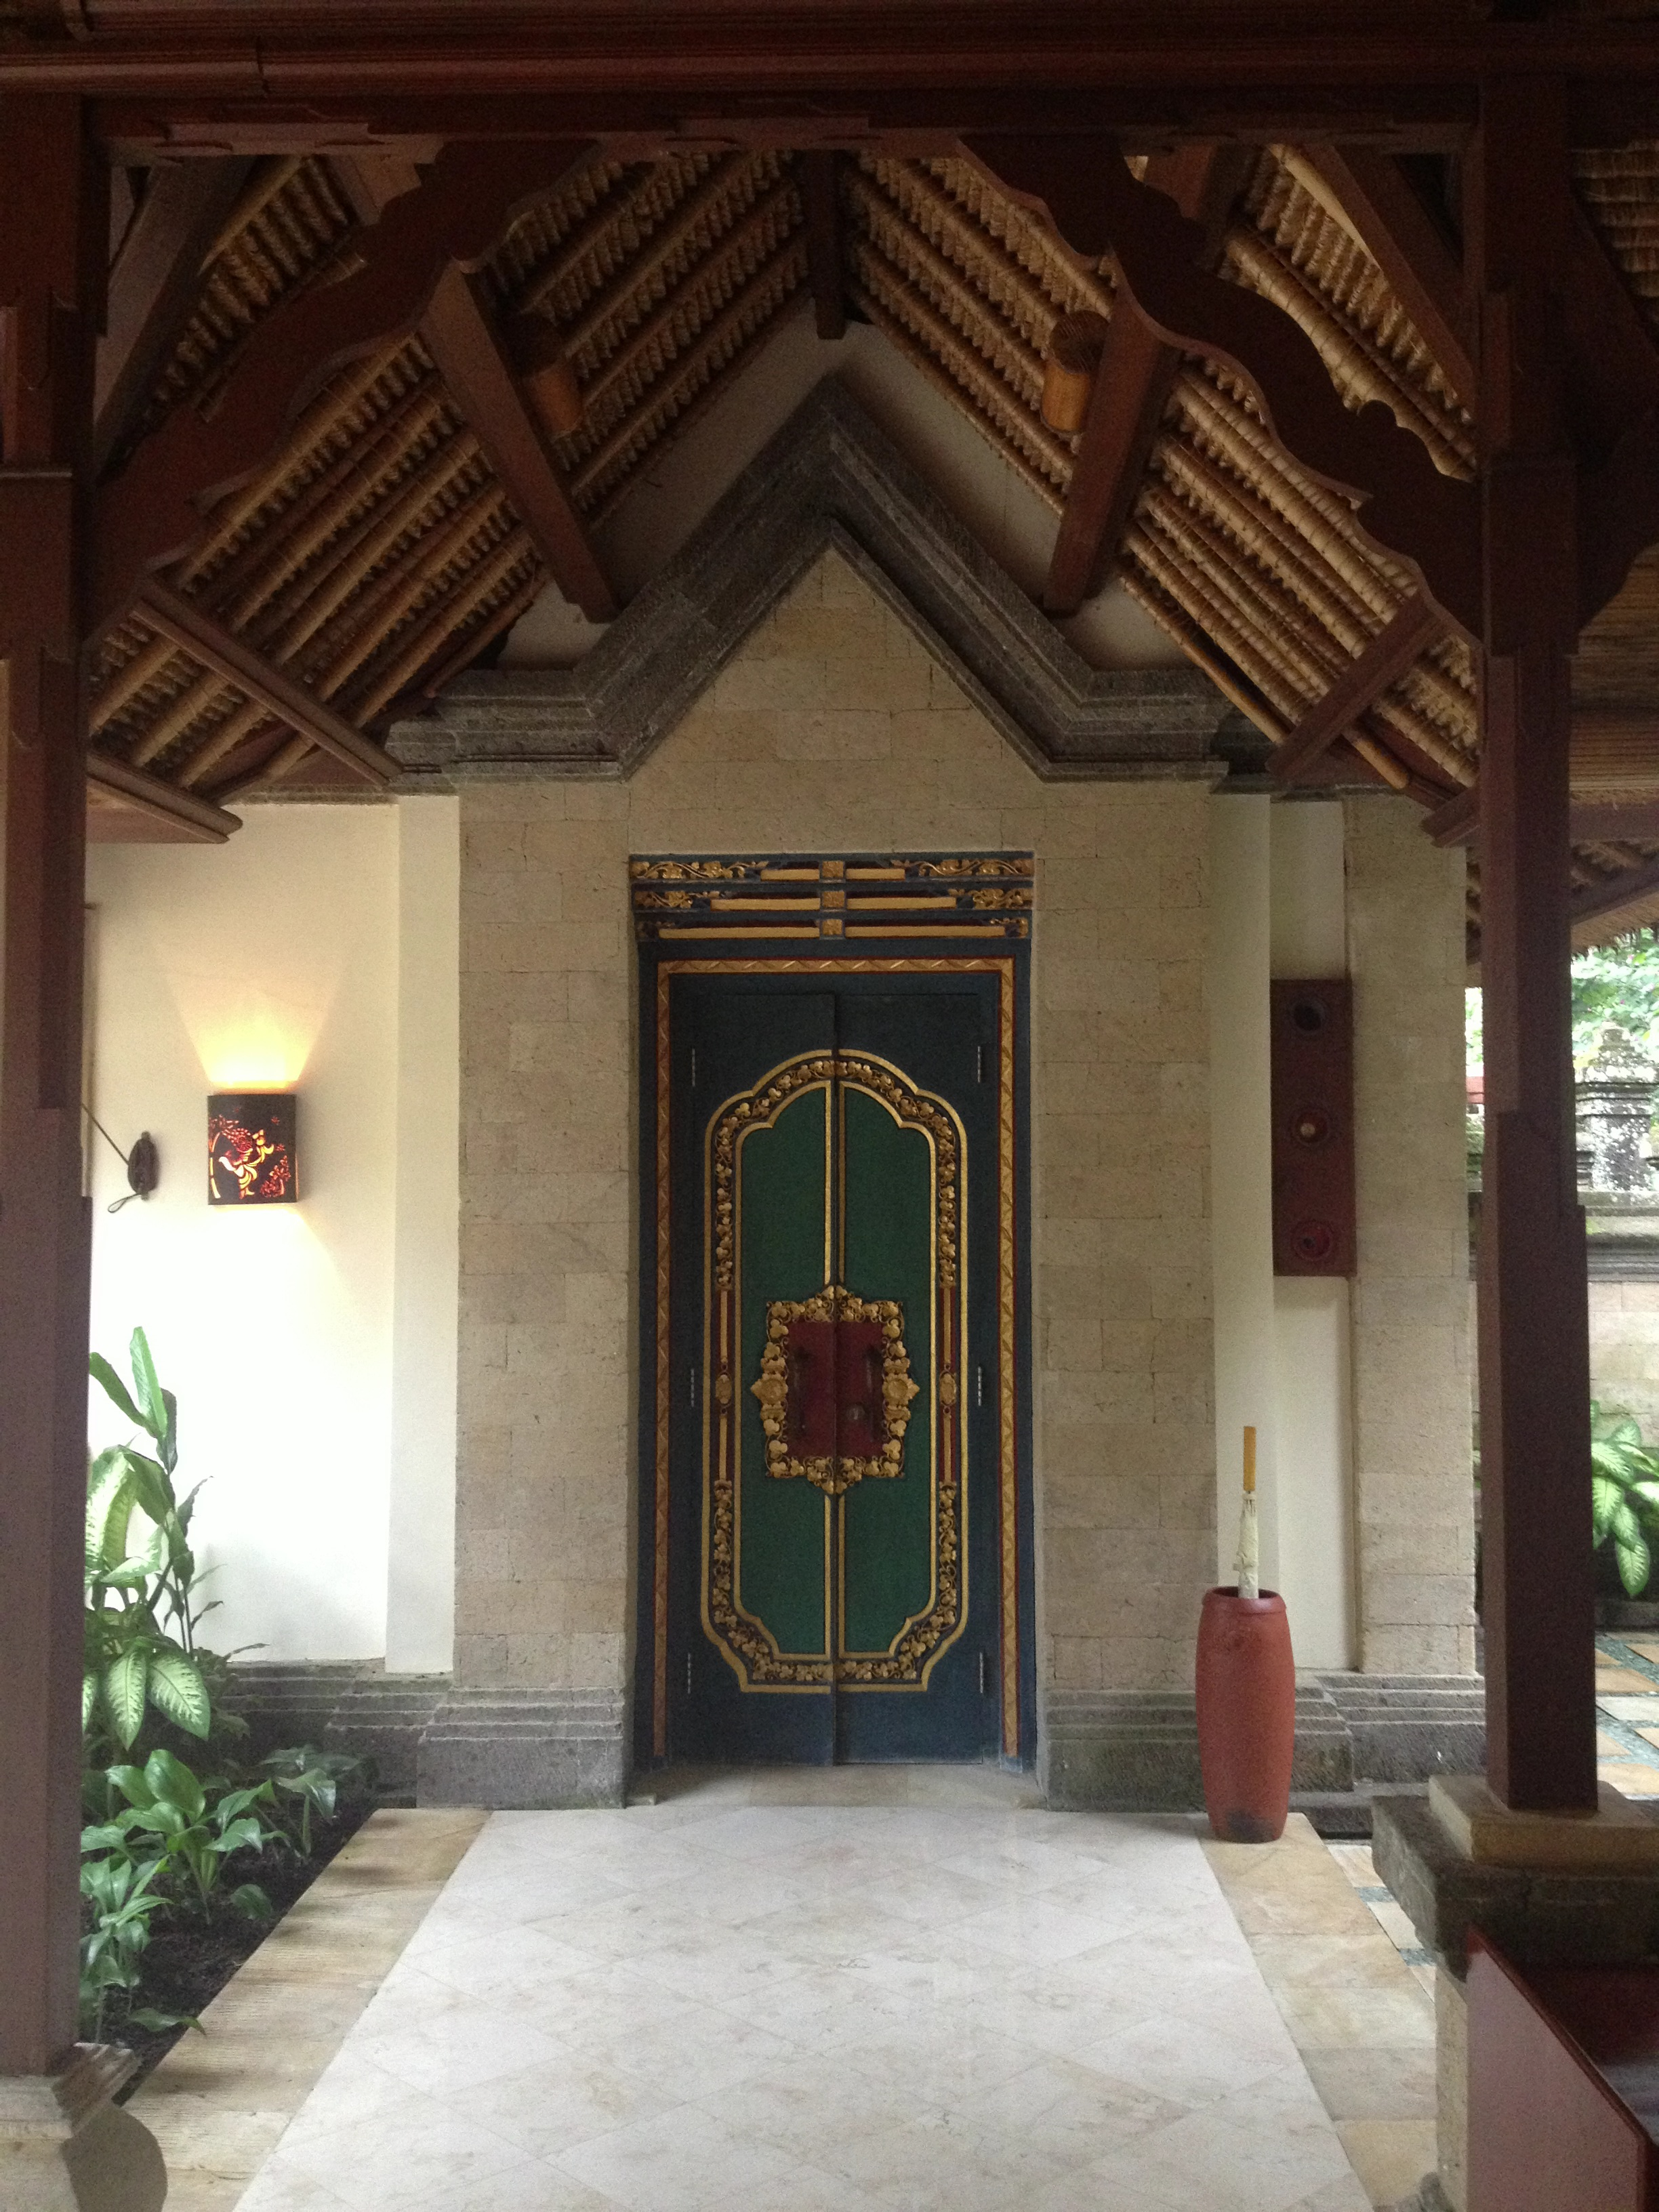 Our villa's front door at Puri Wulundari in Ubud.